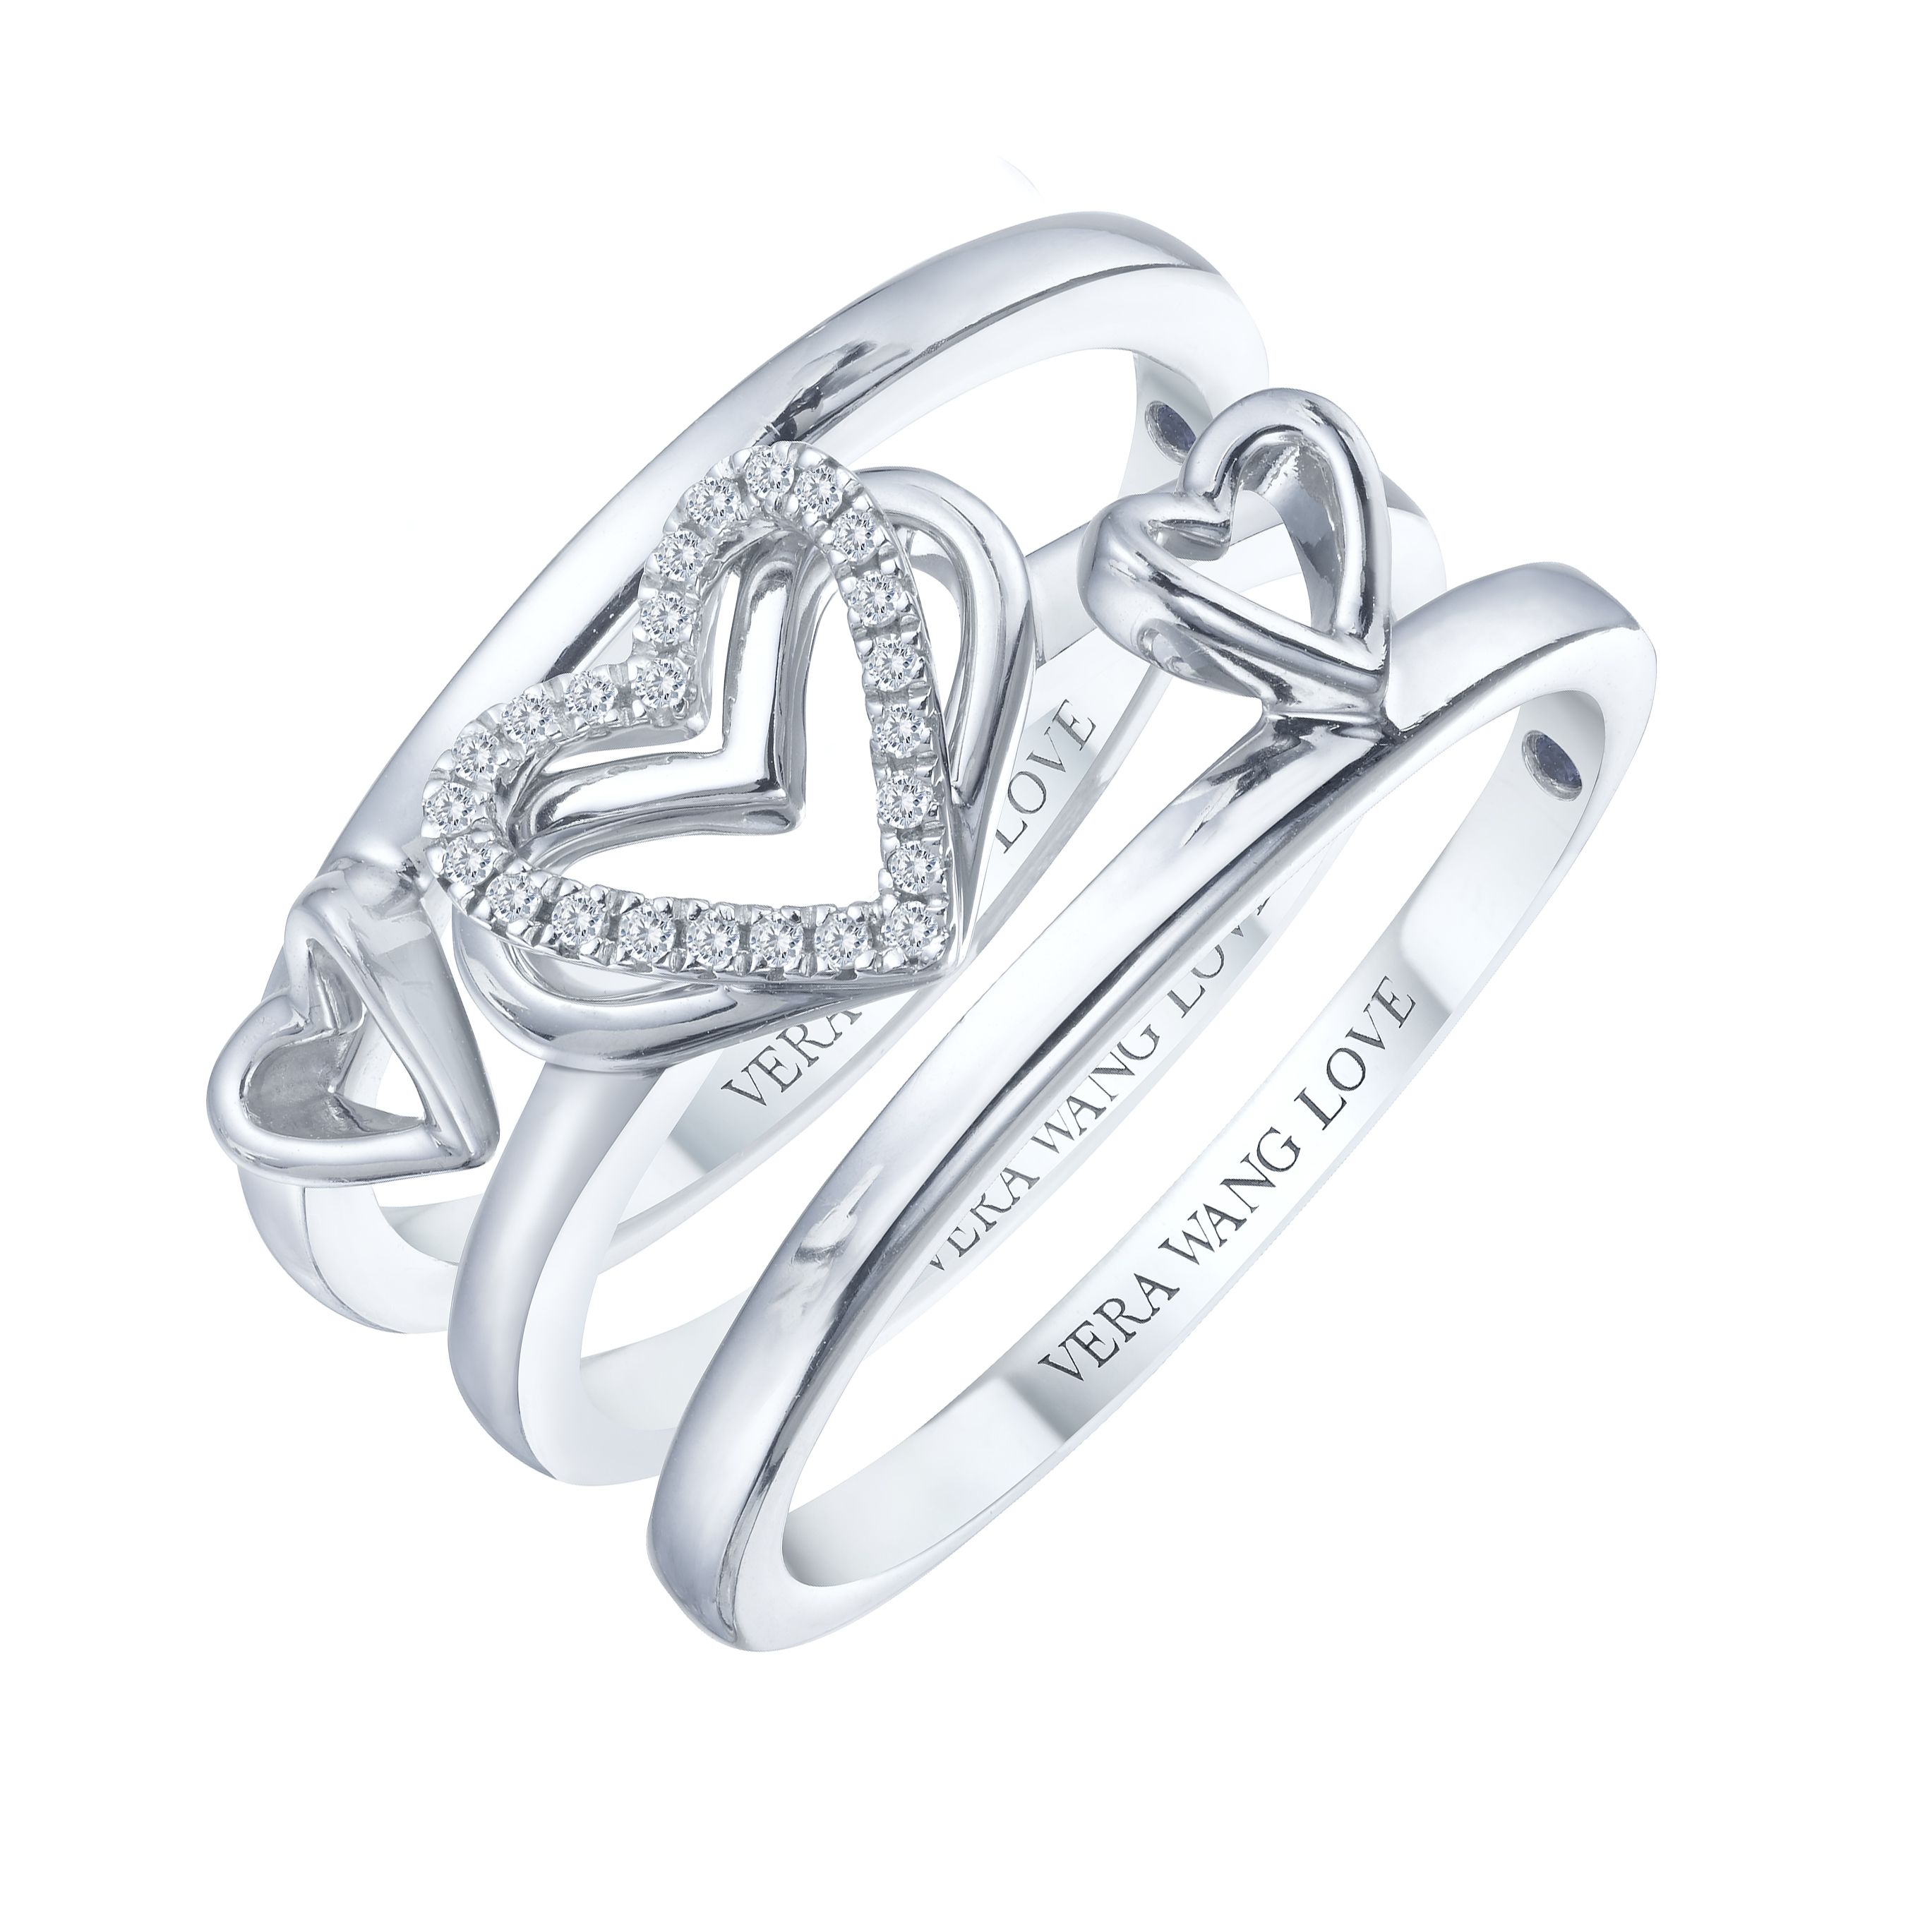 A Beautiful And Fashionable Set Of 3 Stacking Rings From The Vera